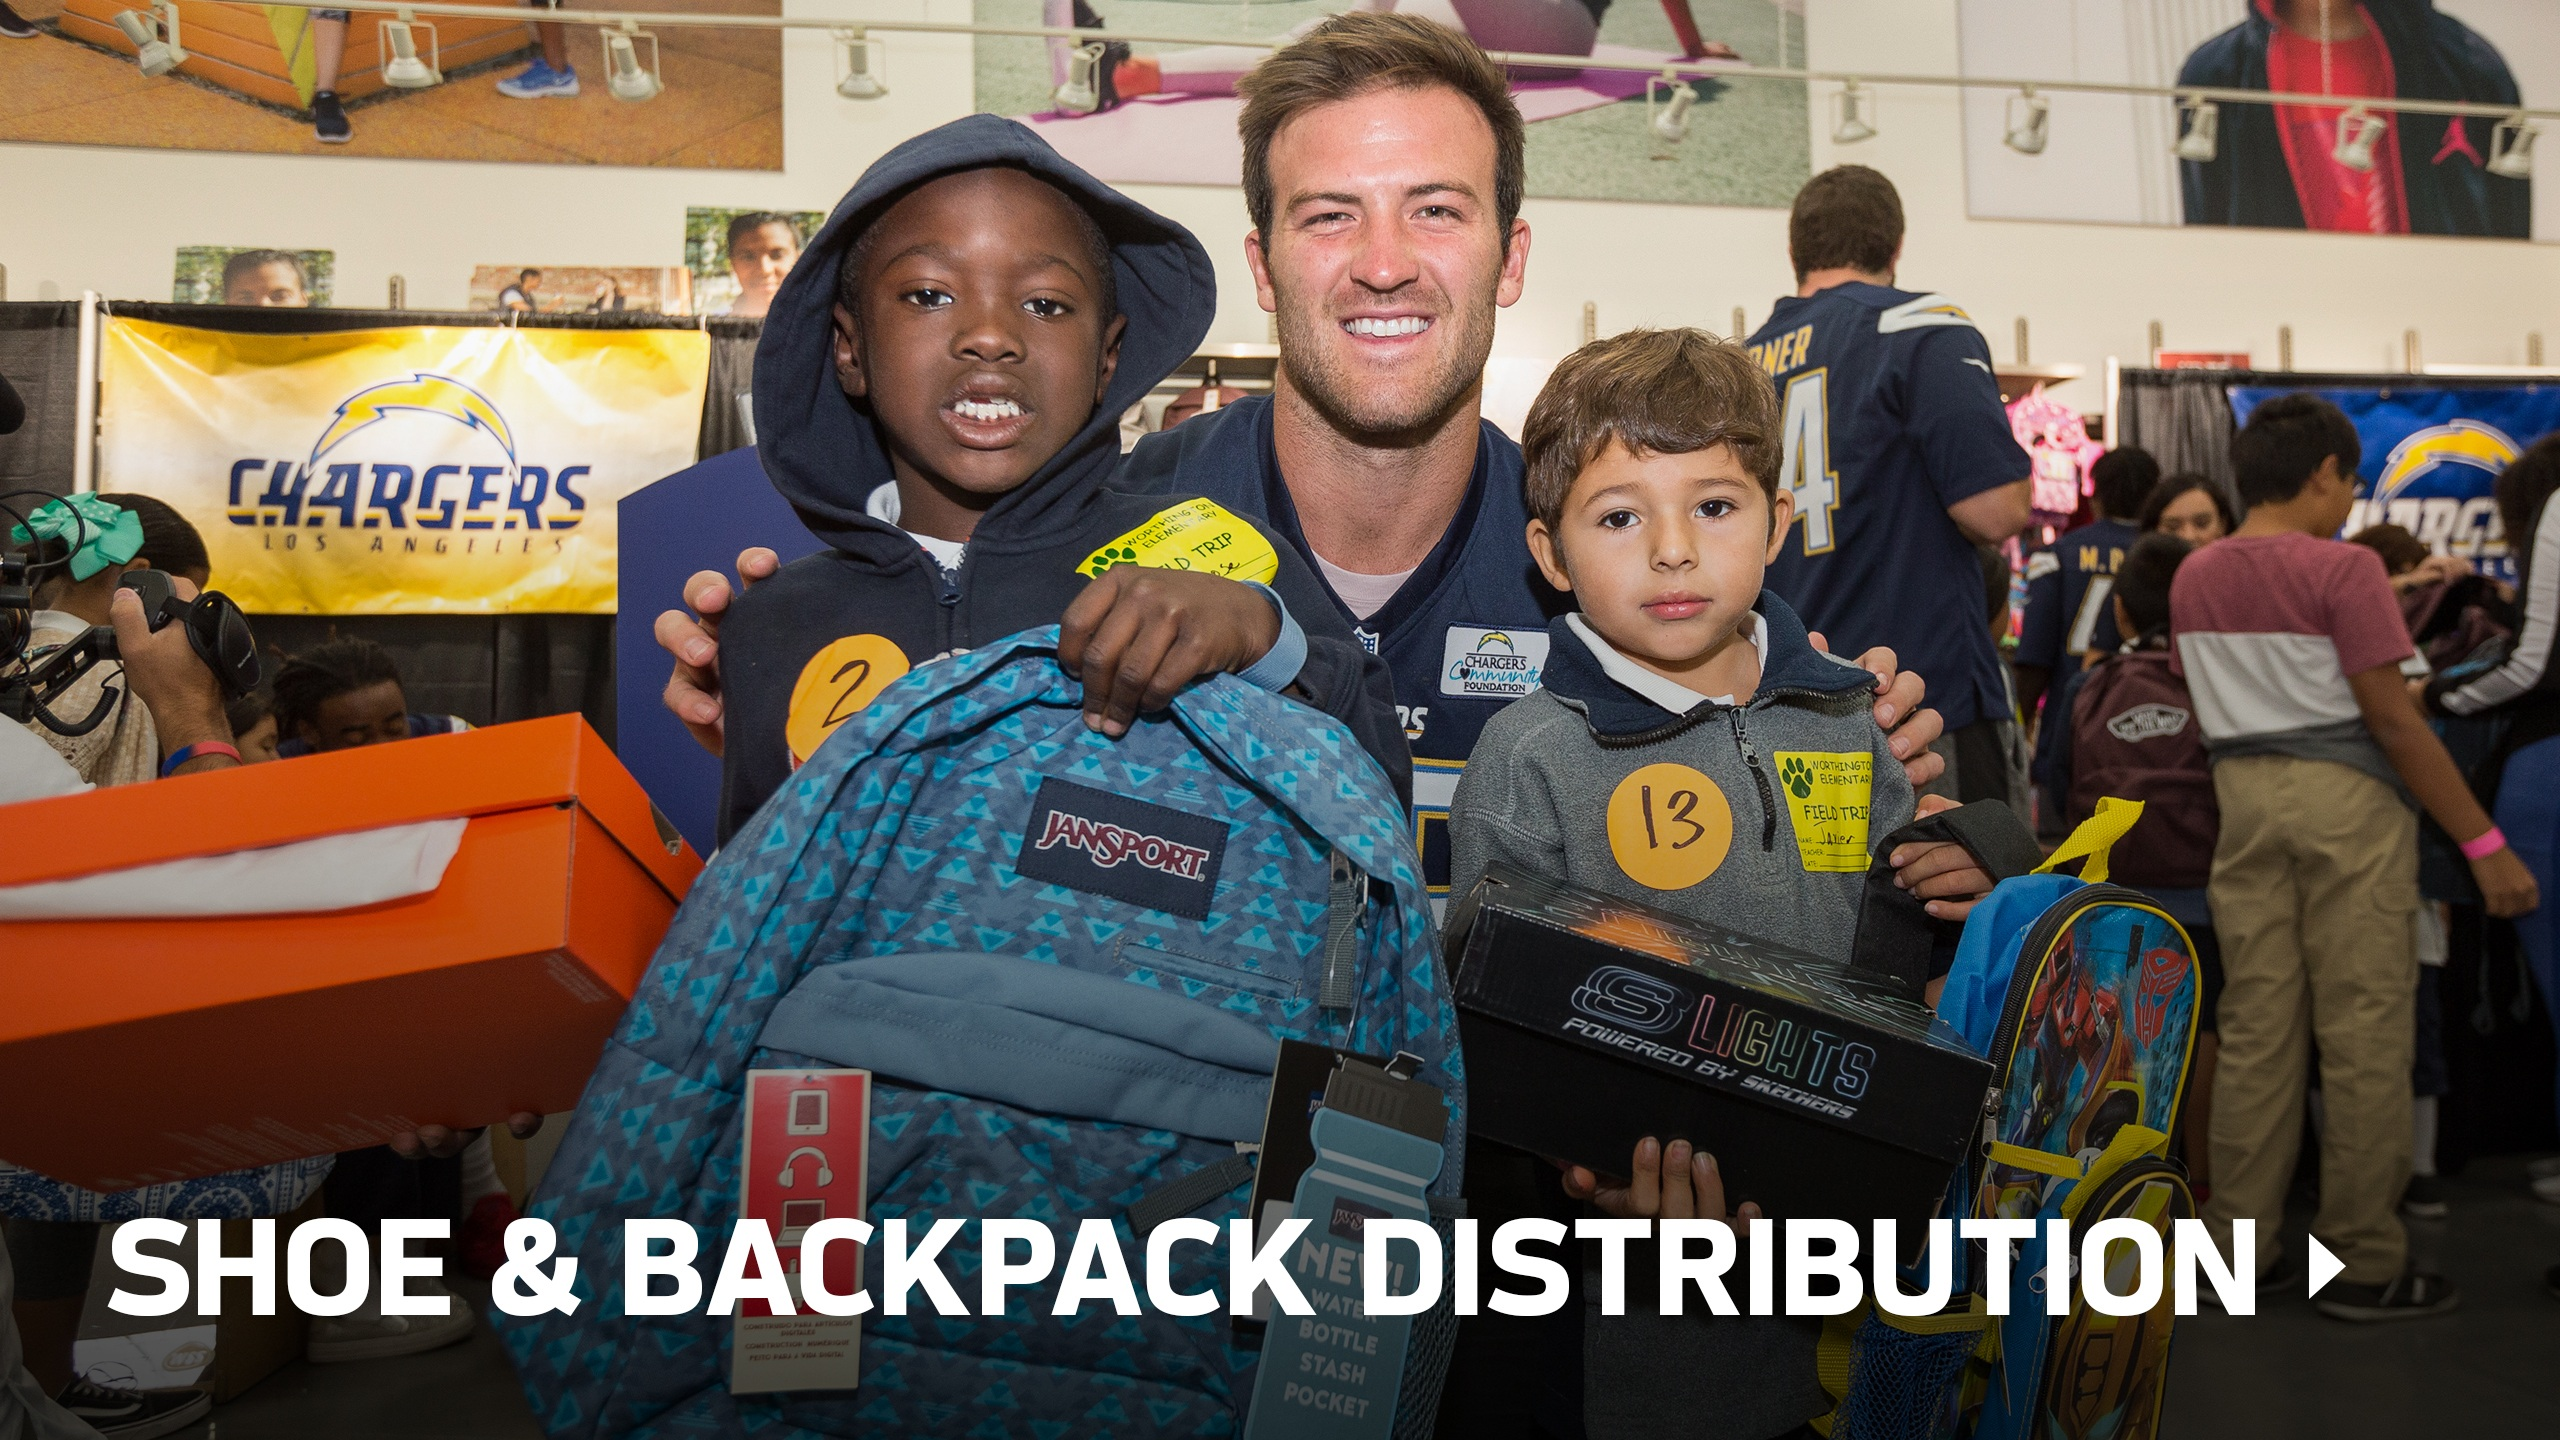 Shoe and Backpack Distribution